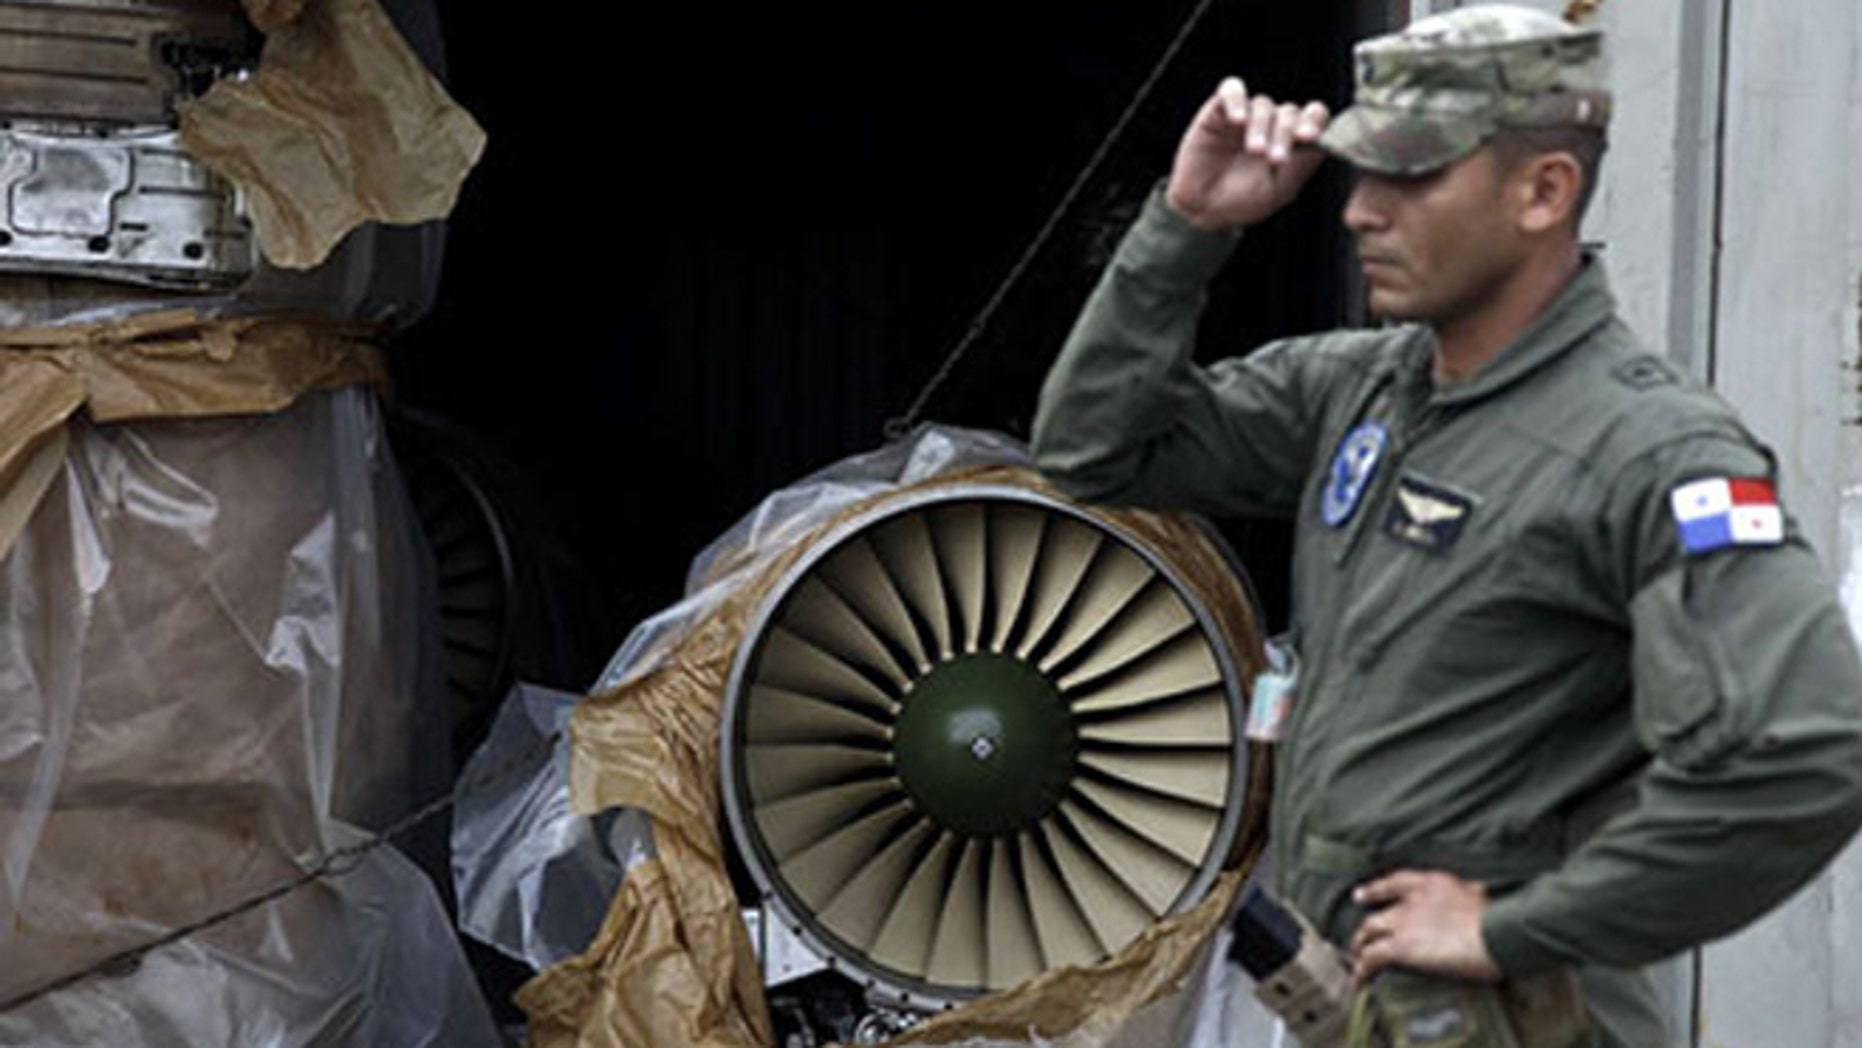 A Panamanian policeman guards a Russian fighter jet engine in one of the hidden containers discovered on a cargo ship bound from Cuba to North Korea via Panama.